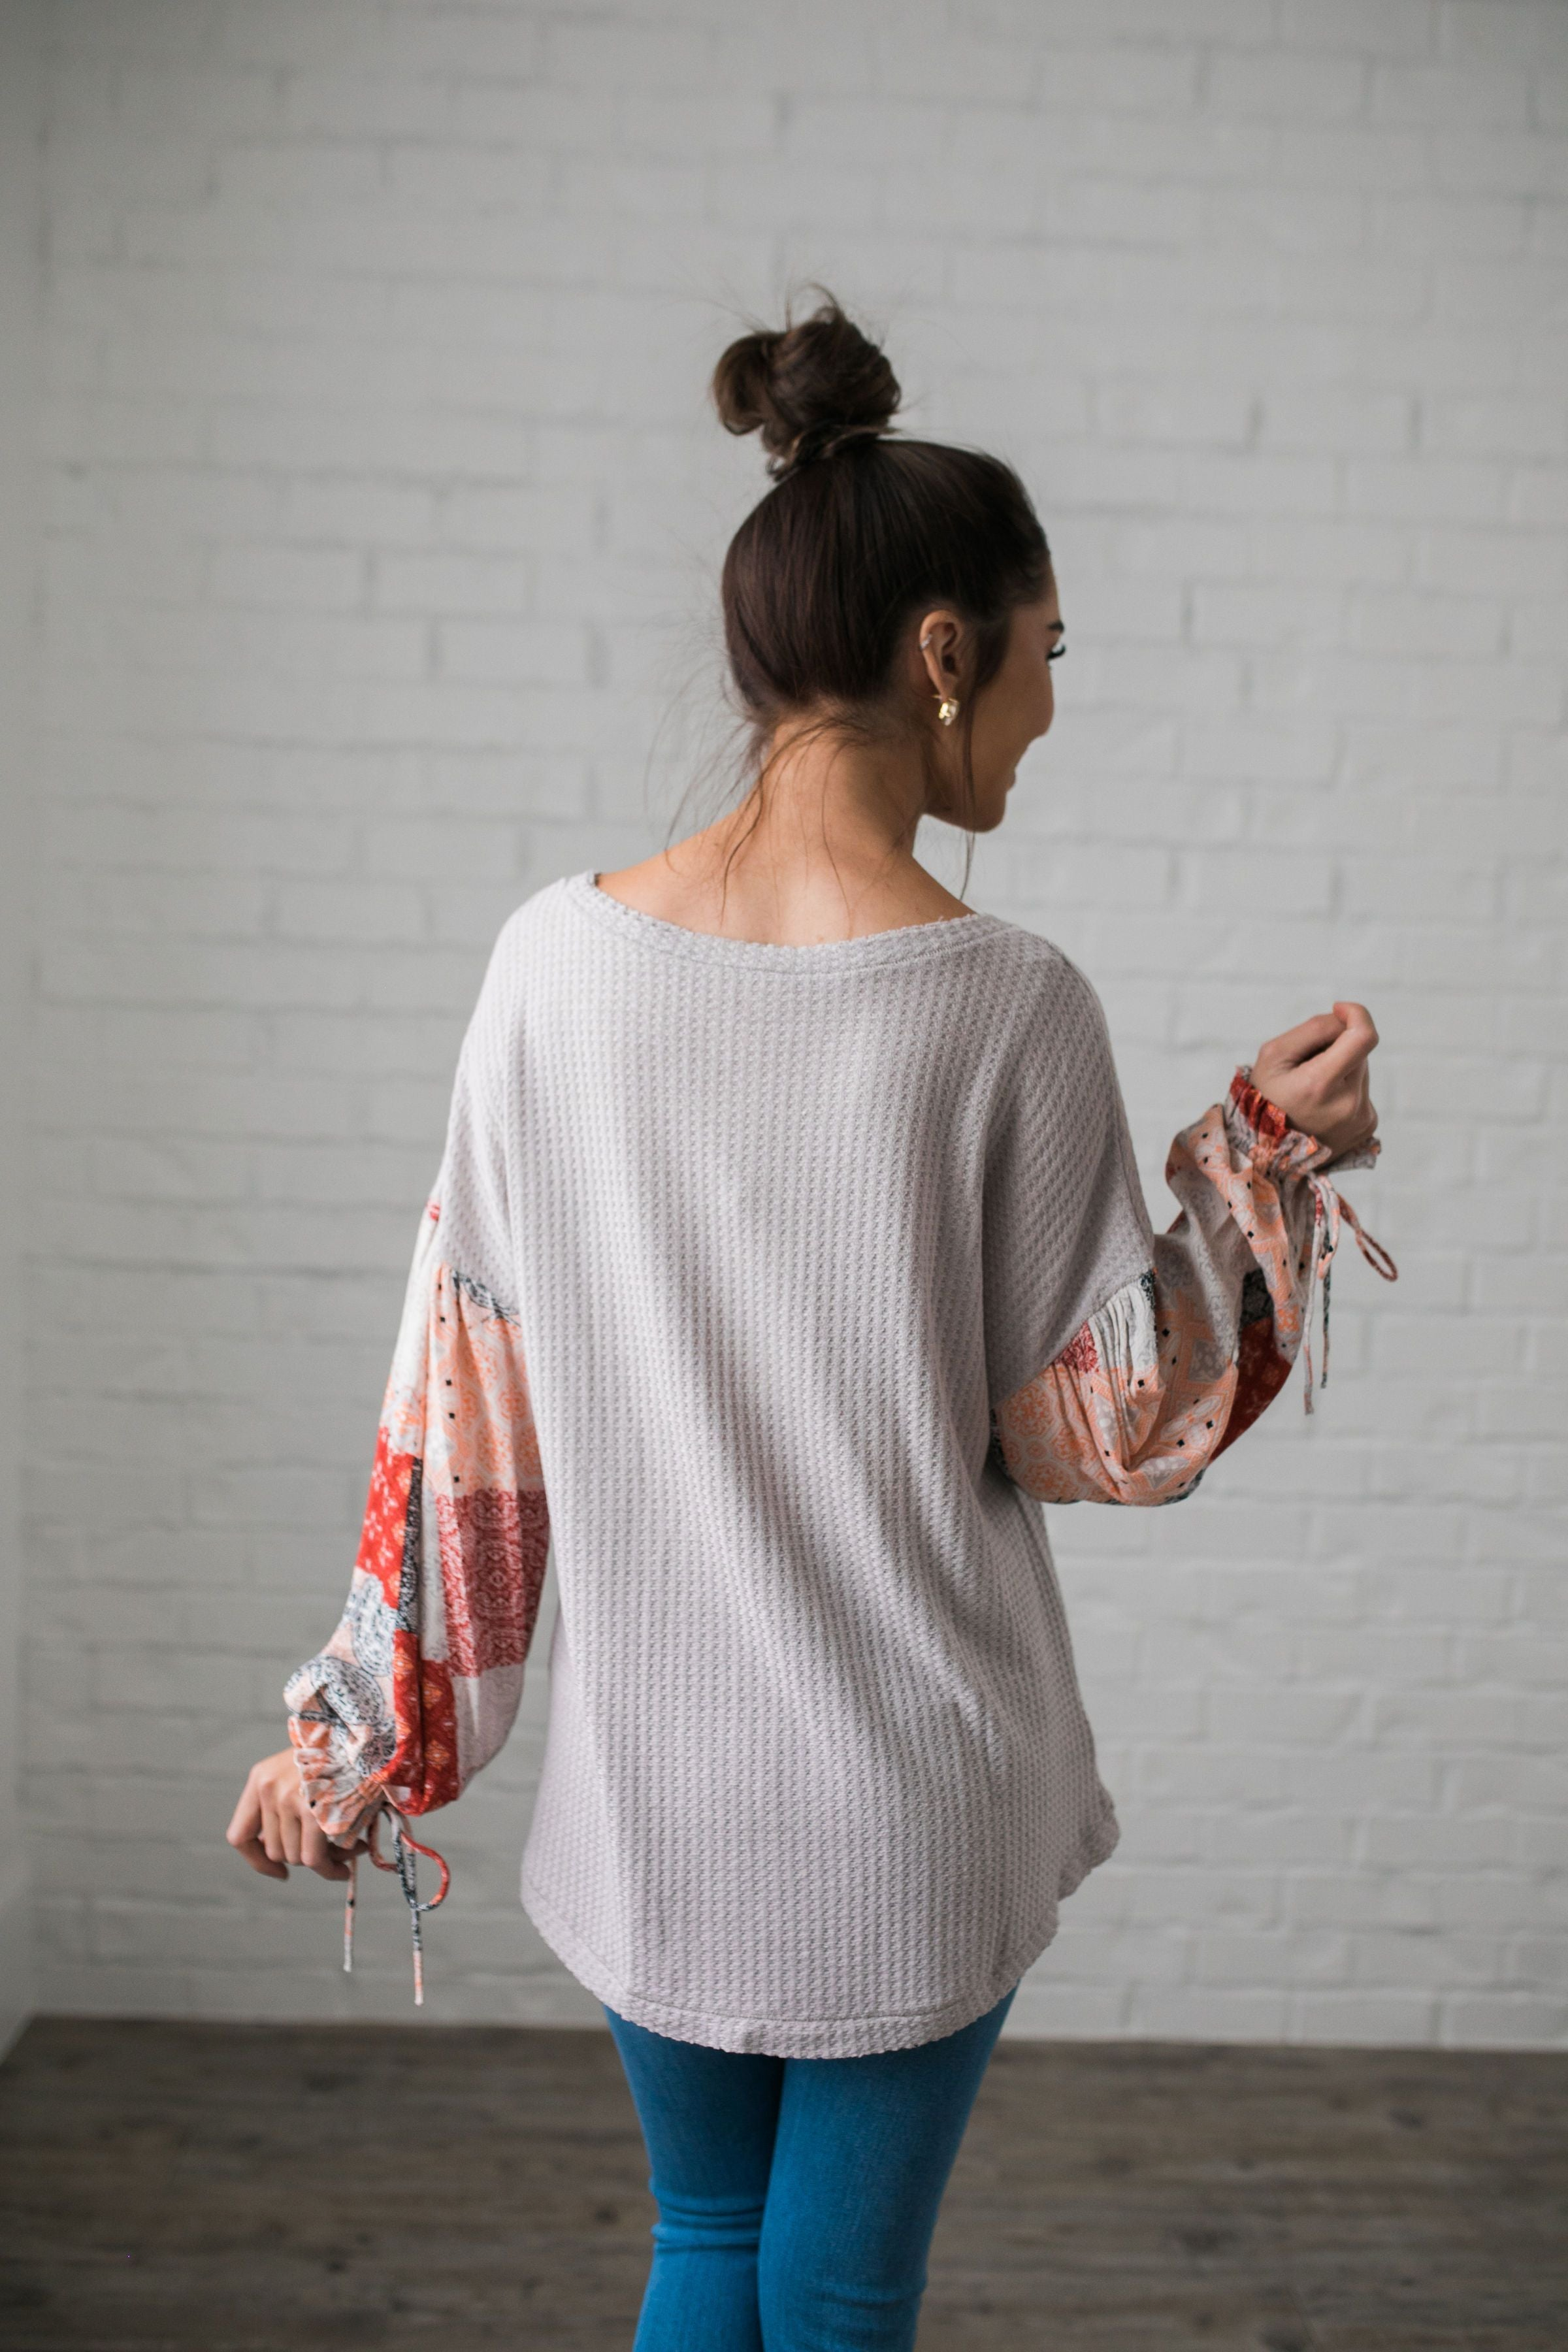 Patchwork Of Promises Top In Taupe - ALL SALES FINAL